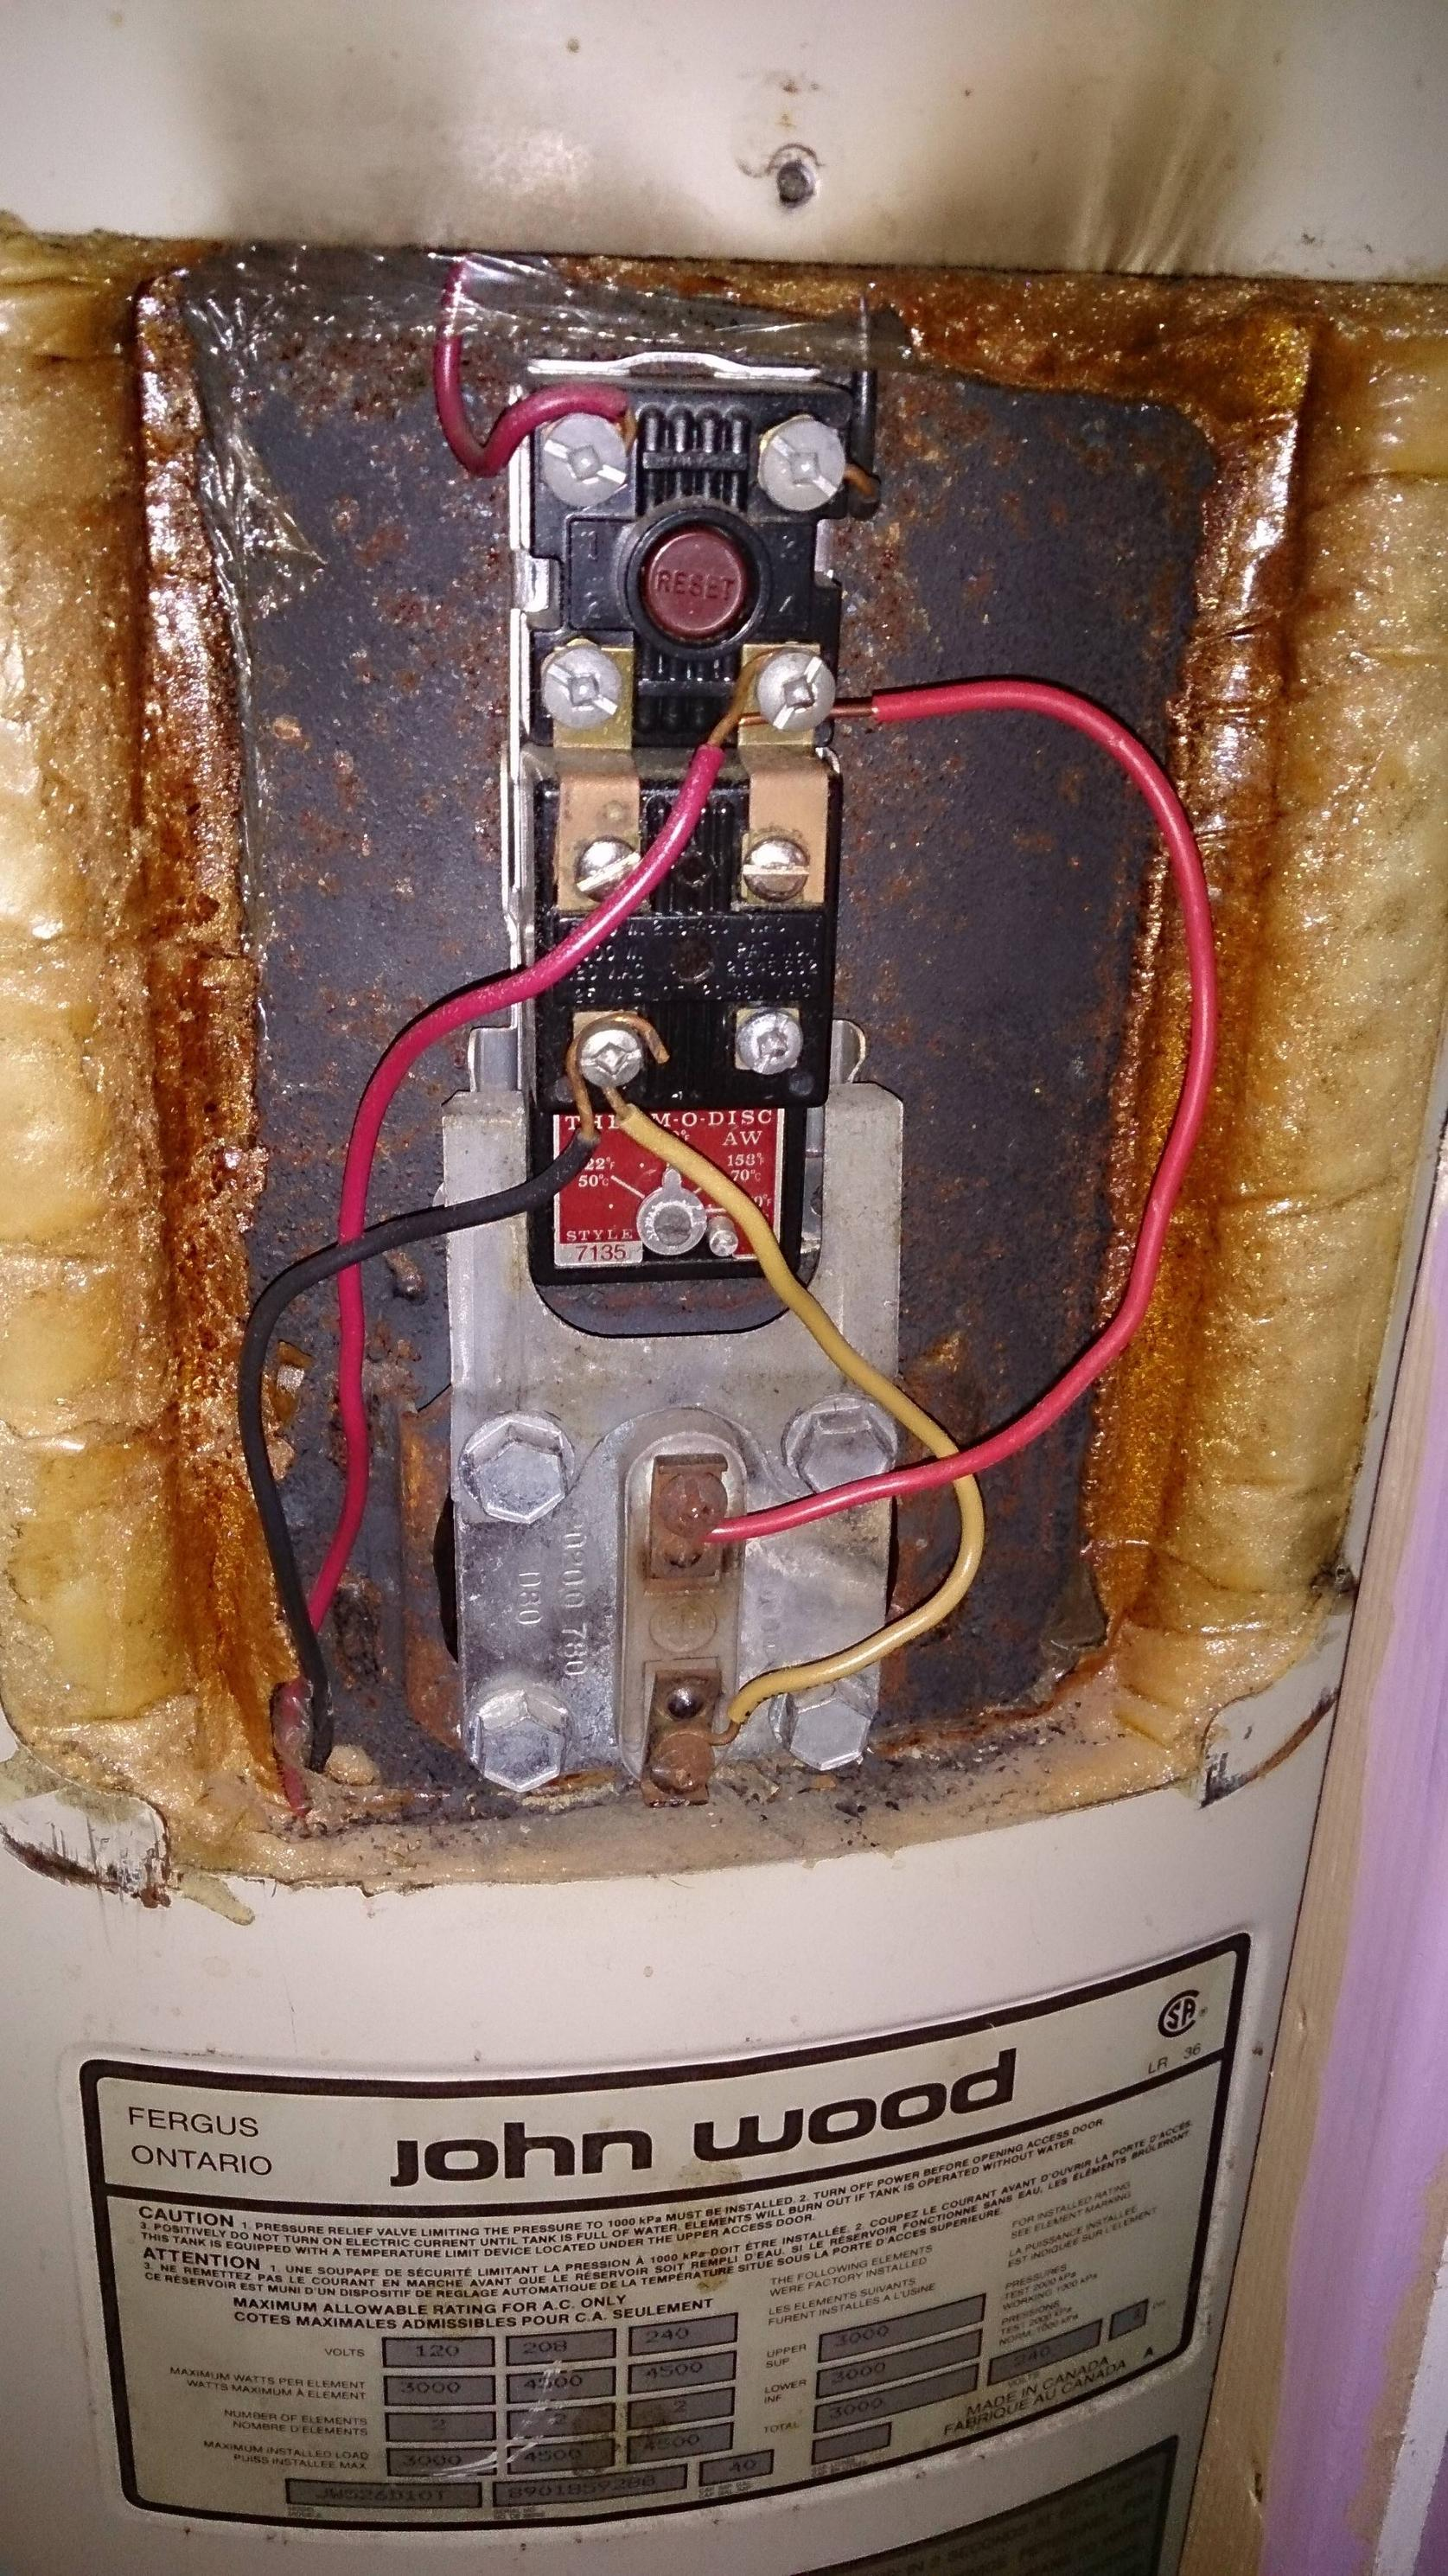 VG_9416] Heater Diagram Electric Hot Water Heater Wiring Diagram Wiring  Diagram Free DiagramEmba Joni Gray Cajos Mohammedshrine Librar Wiring 101